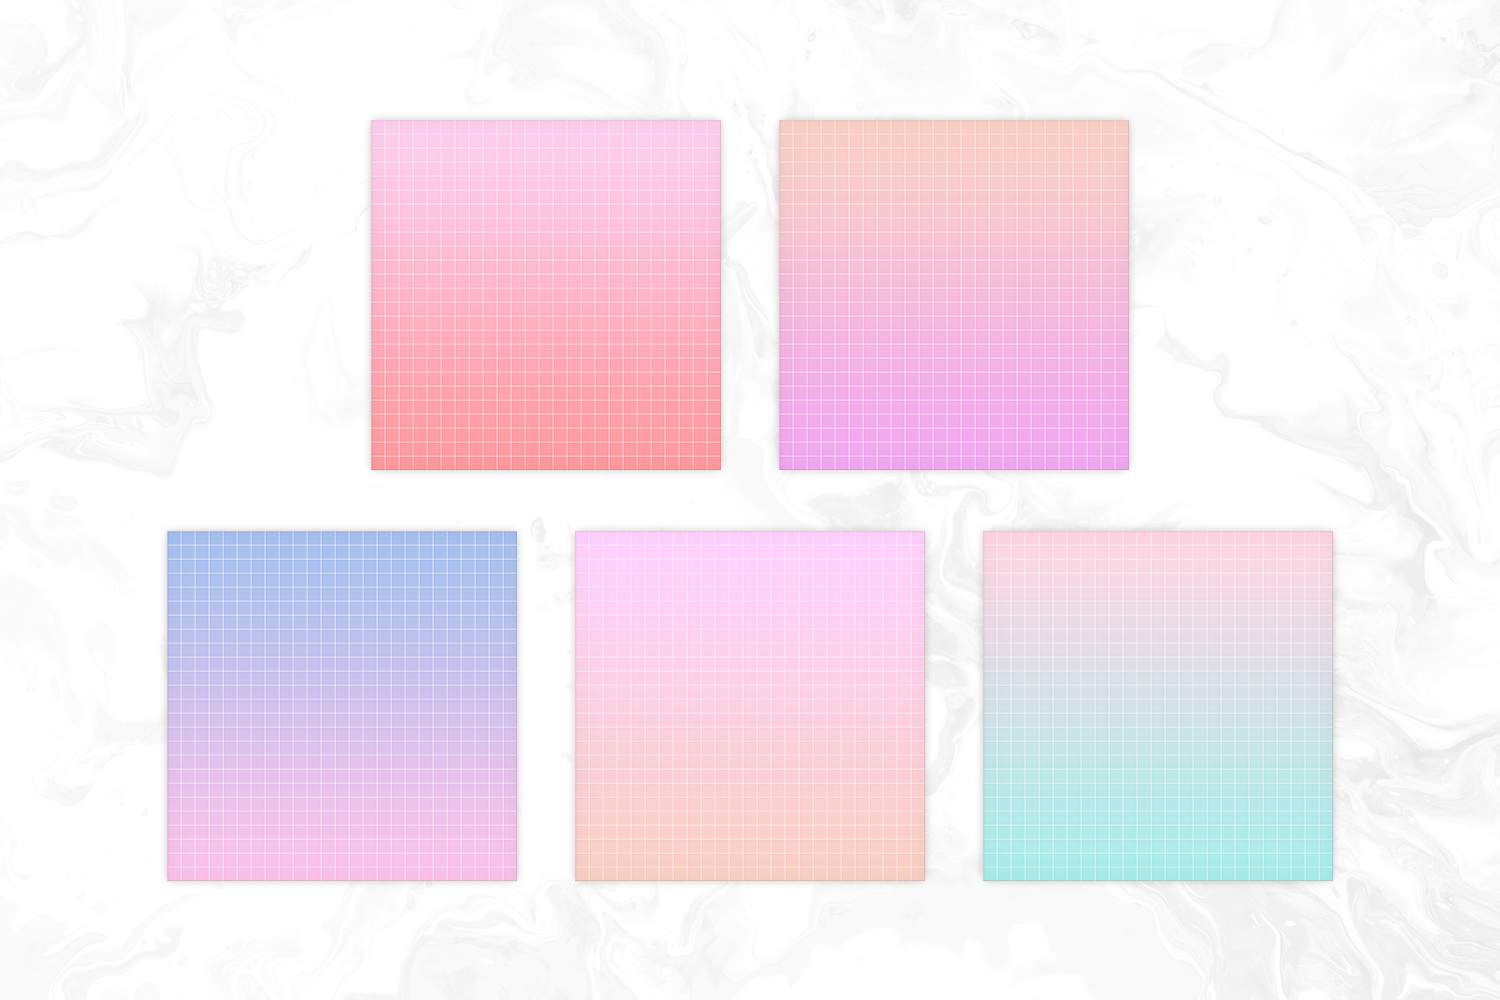 Vapowave Inspired Pastel Gradient Big Grid Backgrounds example image 2